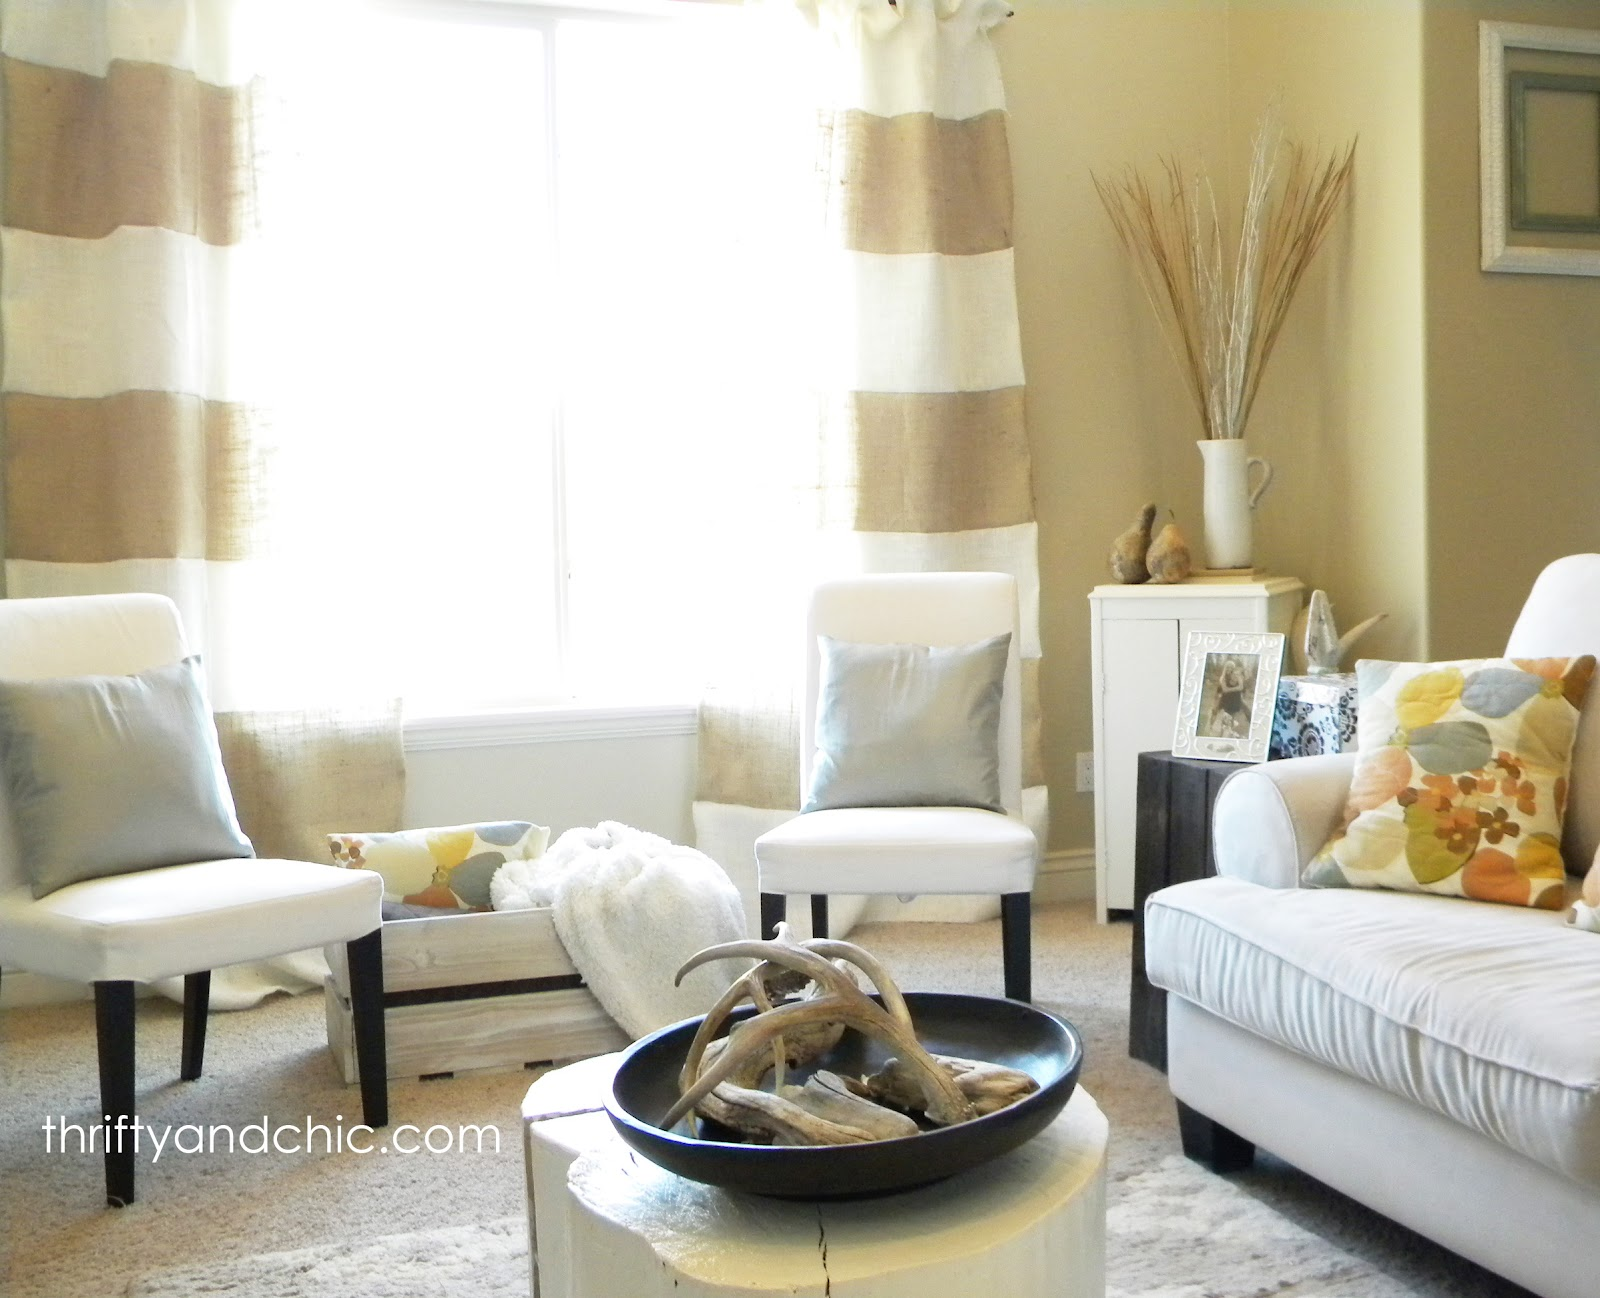 Thrifty and chic diy projects and home decor for Neutral living room decor